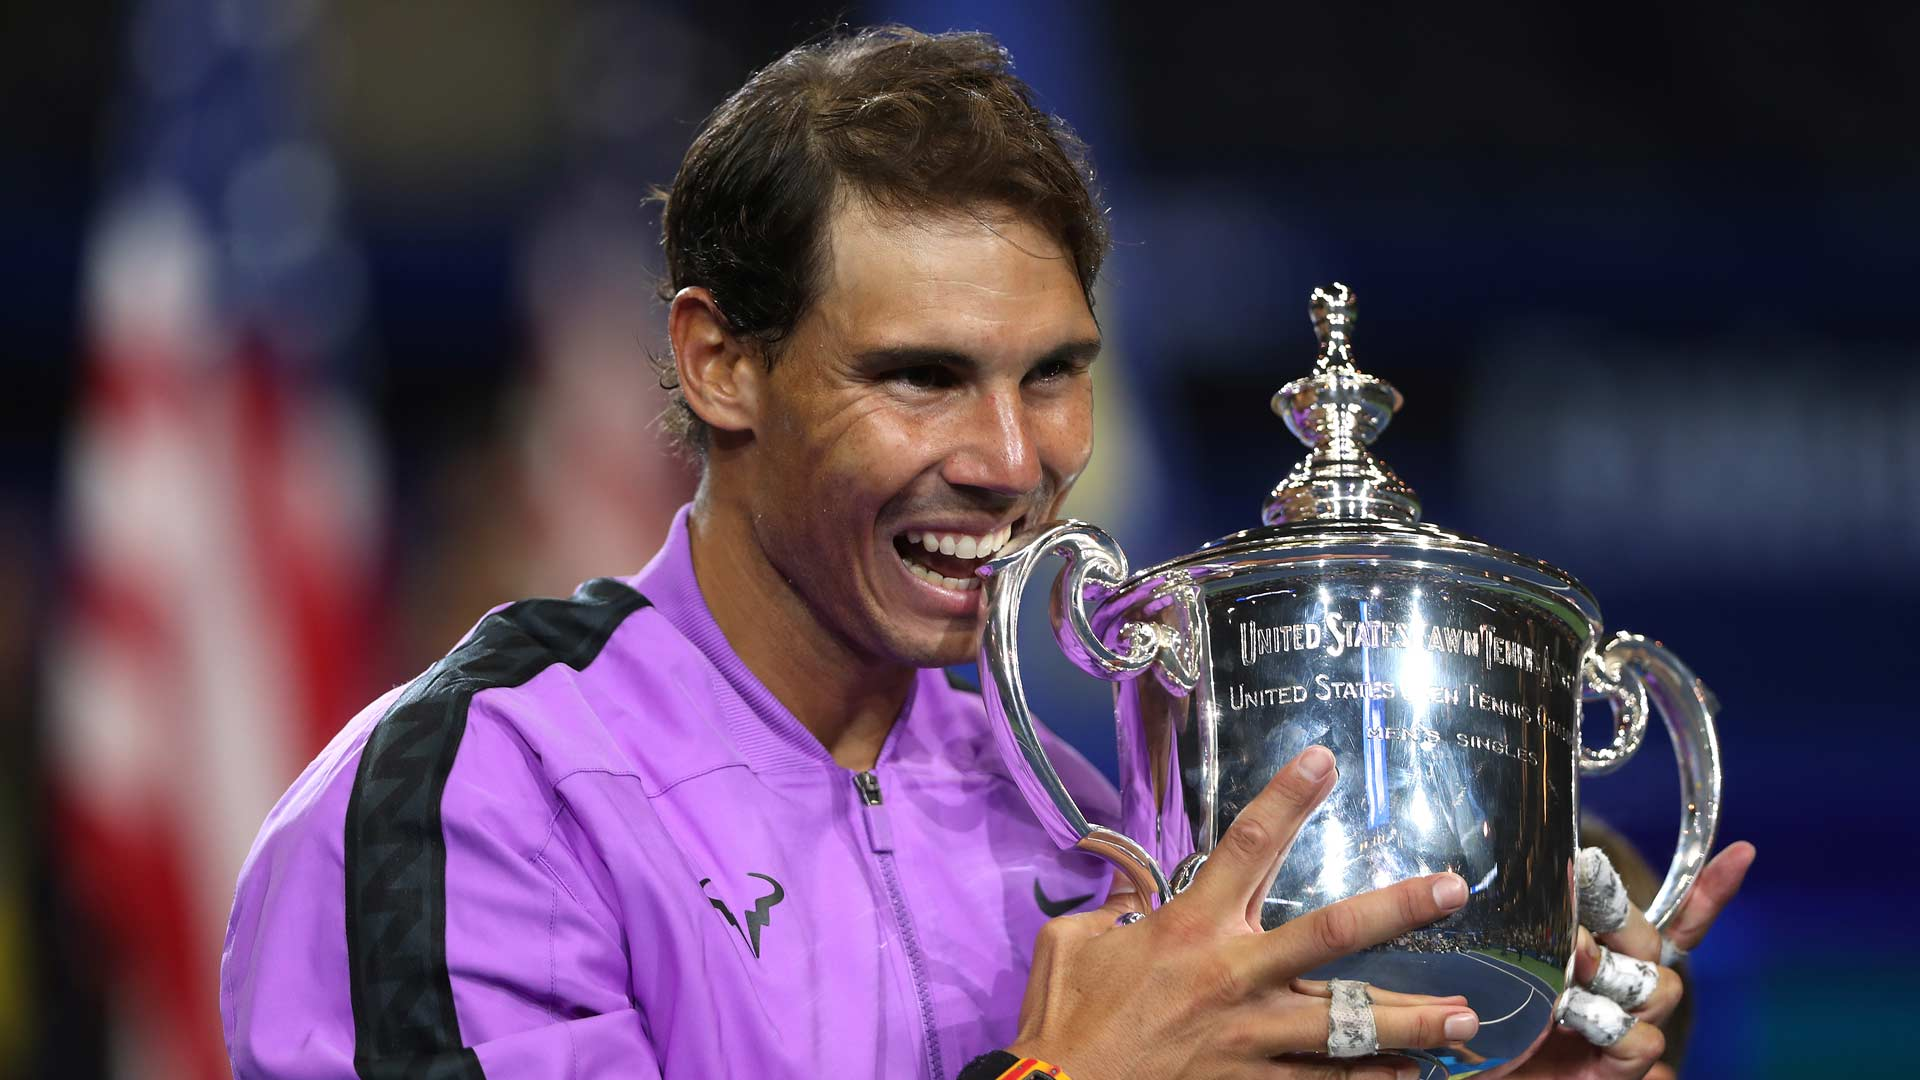 Rafael Nadal Q A After 2019 Us Open Title Nothing More Satisfying Than Empowering Inspiring Others Atp Tour Tennis